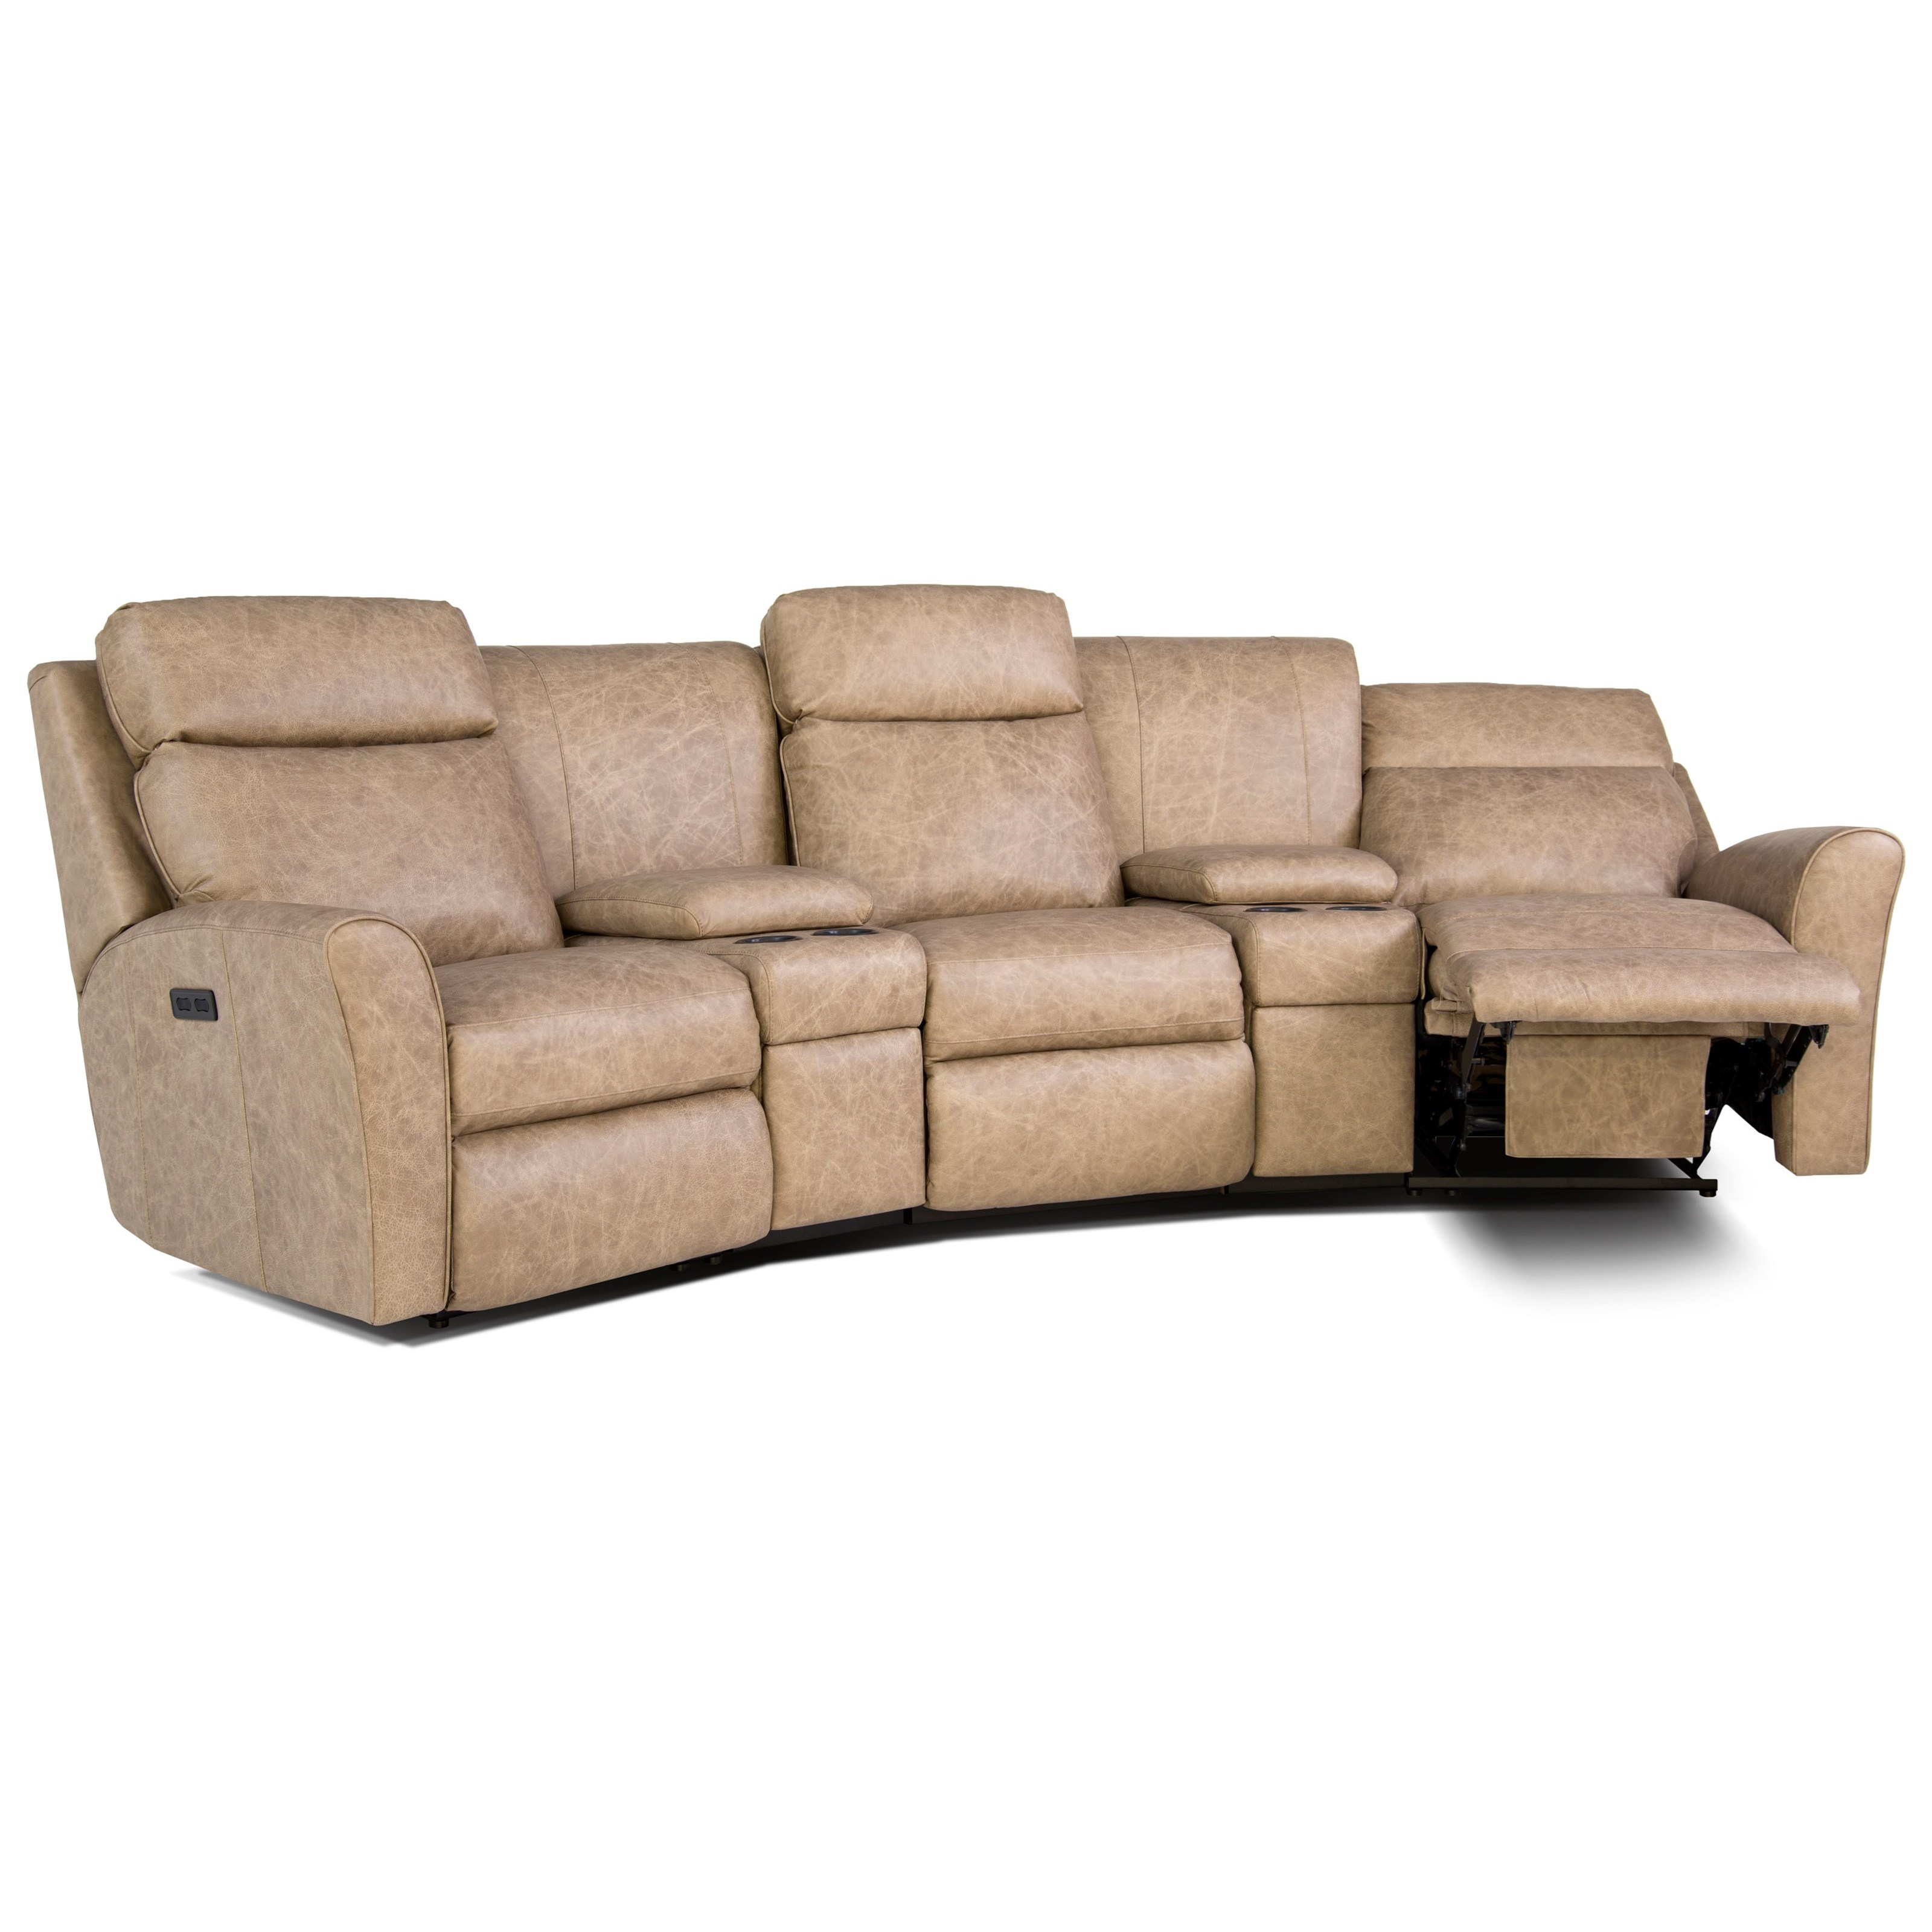 Smith Brothers 418 Casual Motorized Reclining Conversation